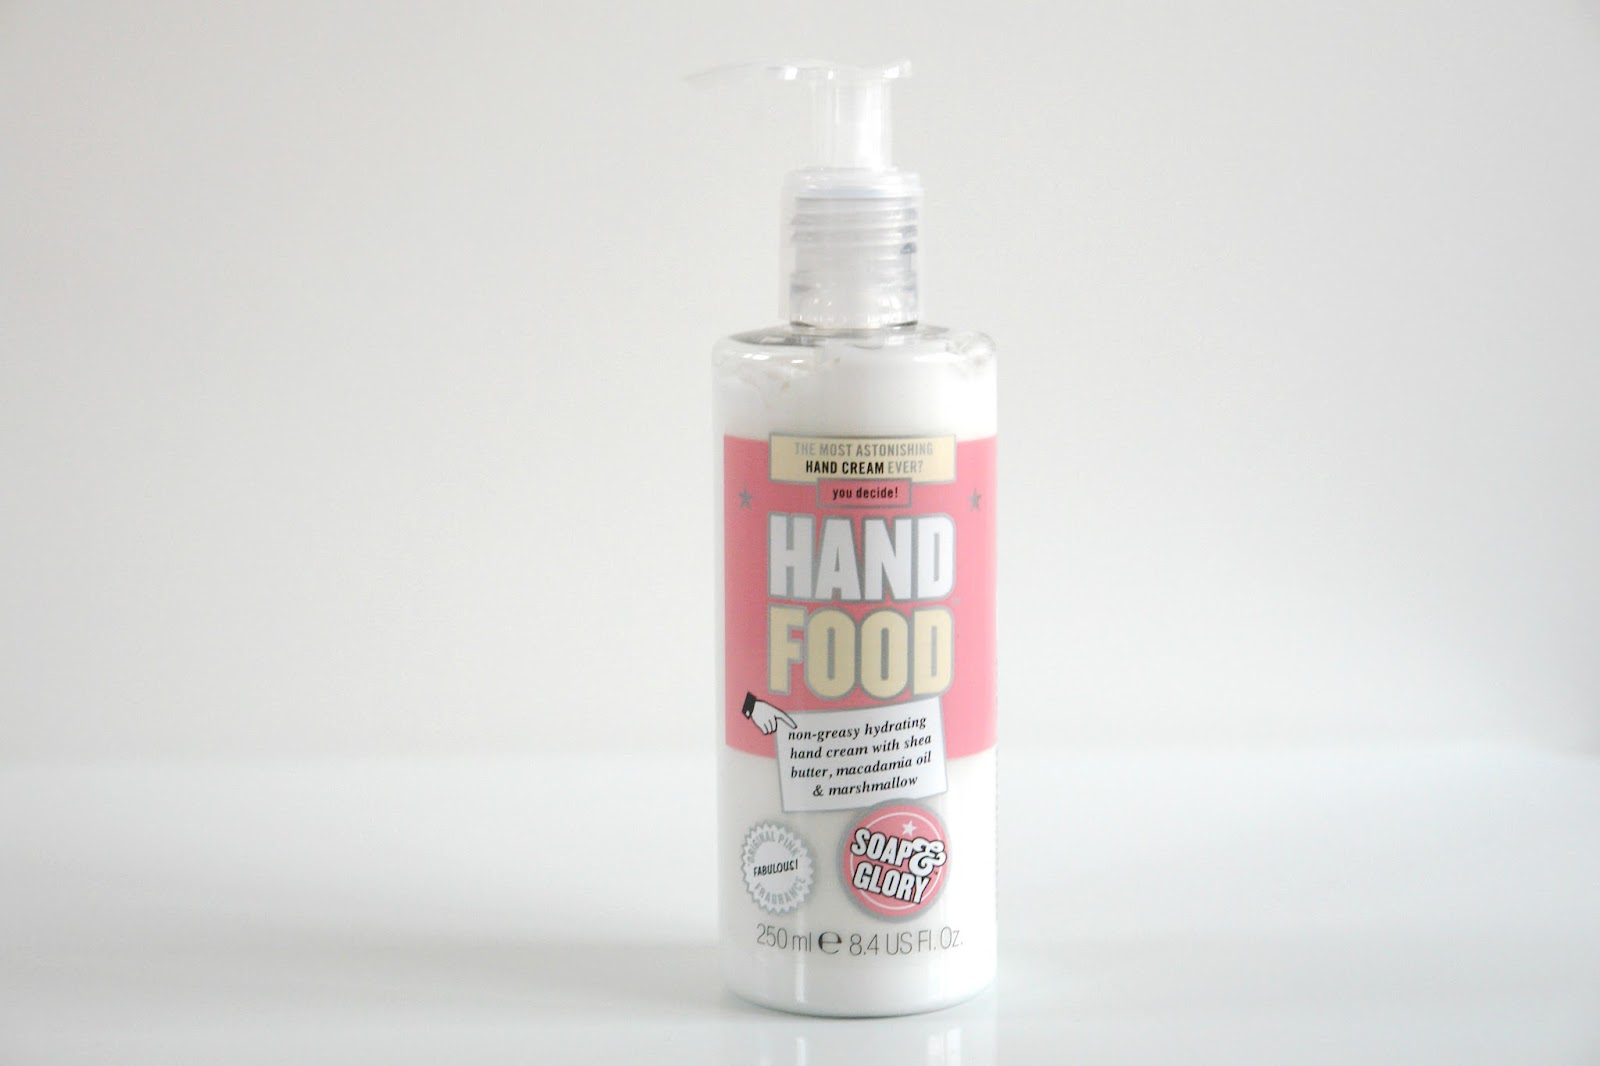 Soap & Glory Hand Food Hand Cream Pump review